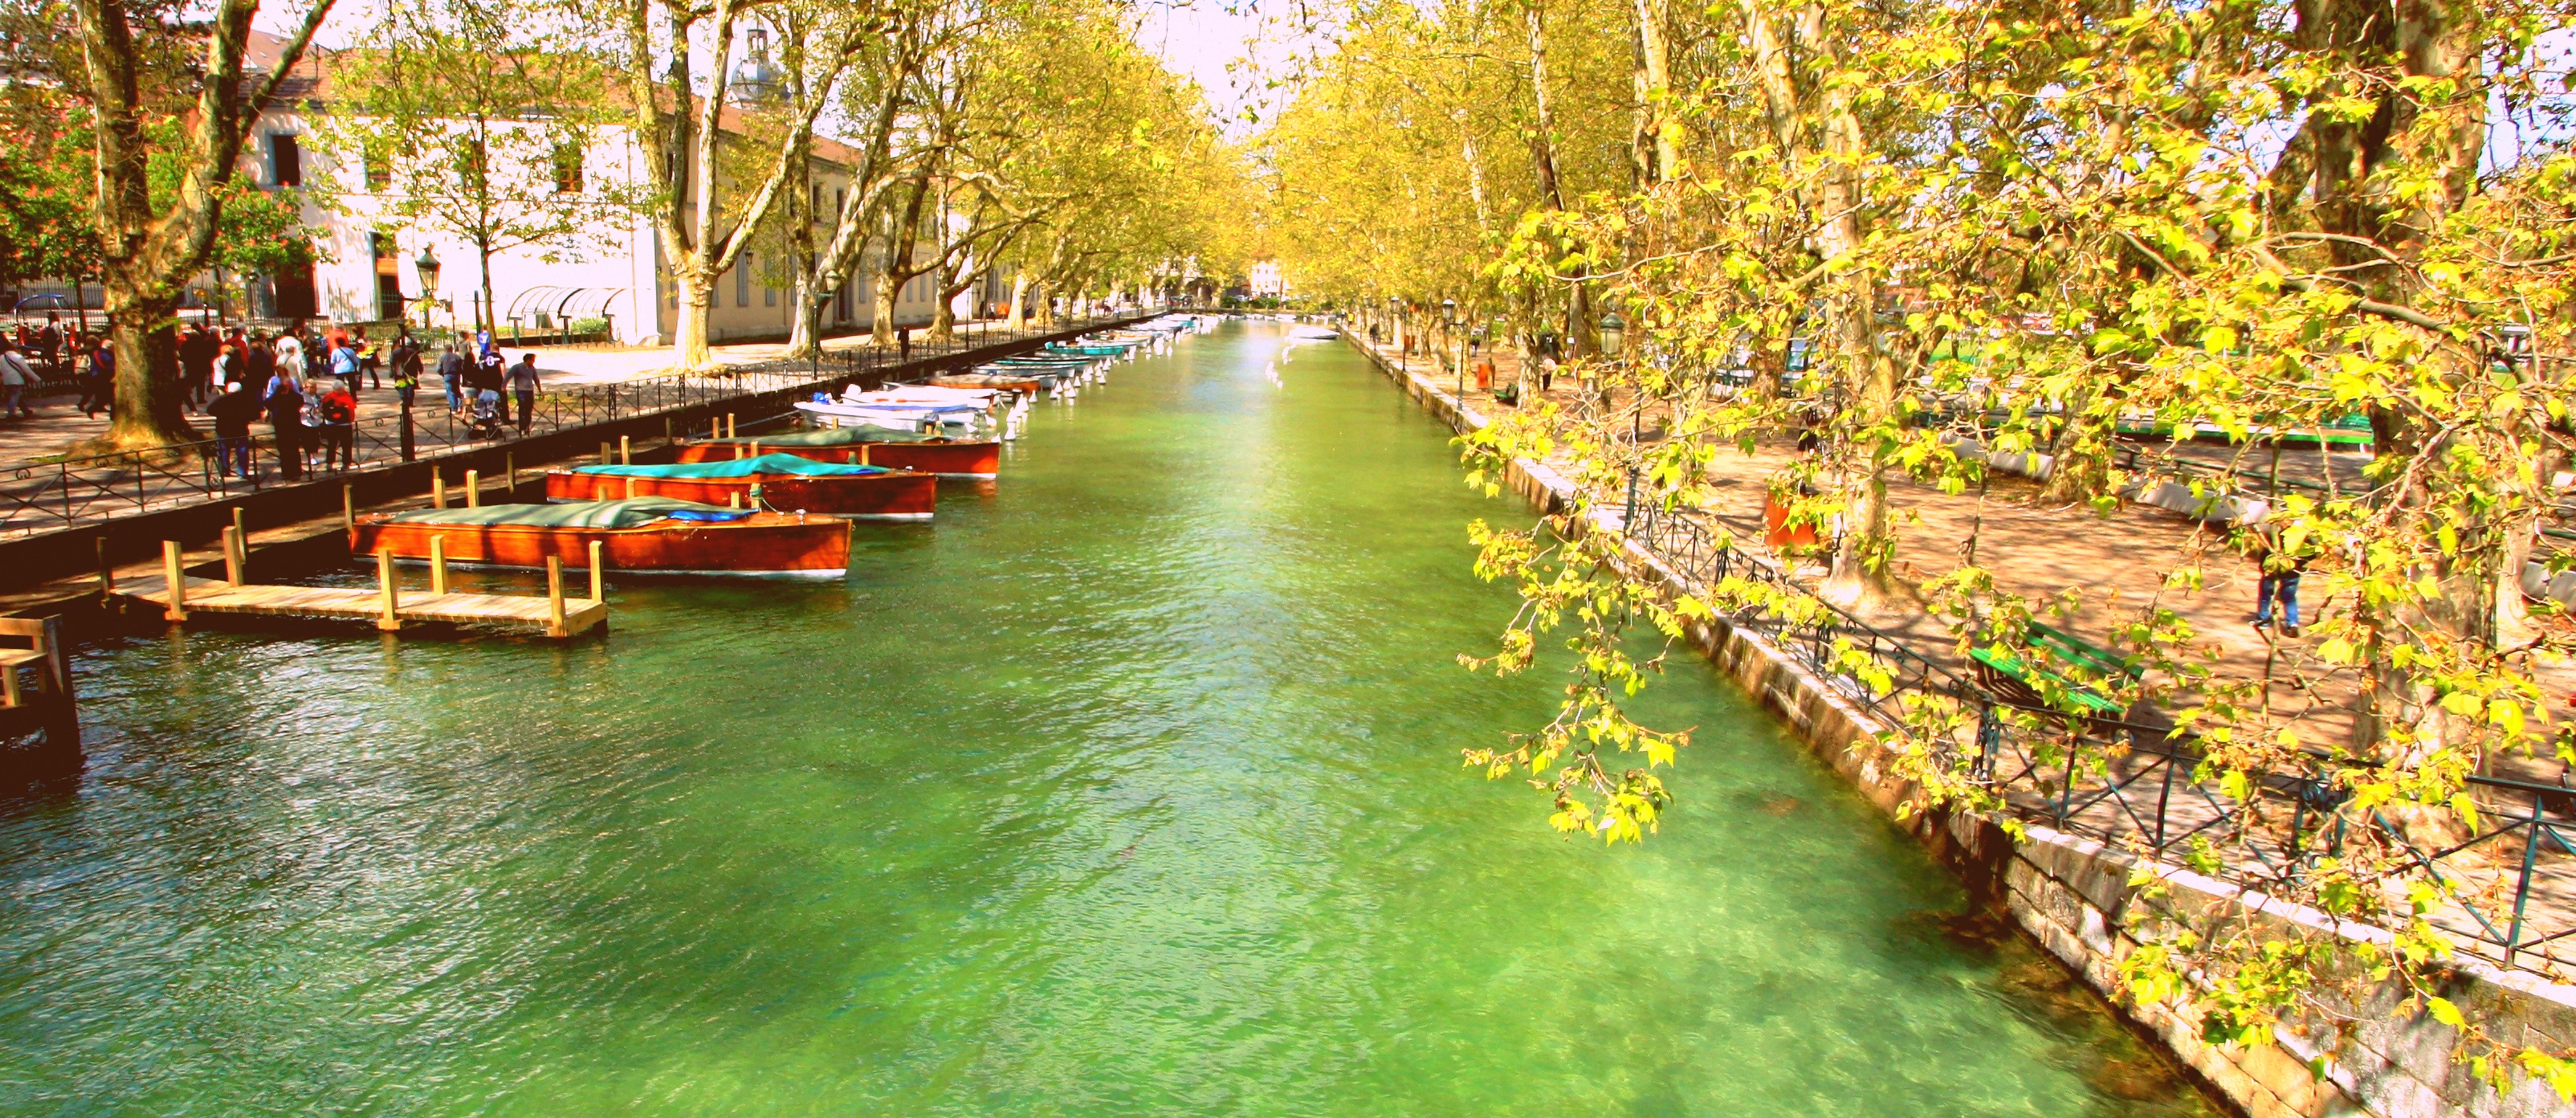 Lake-Annecy-France-wild-swimming-lake-annecy-tartiflette-beer-and-wild-swimming-the-perfect-start-to-summer-holiday-in-france-and-french-roadtrip-1